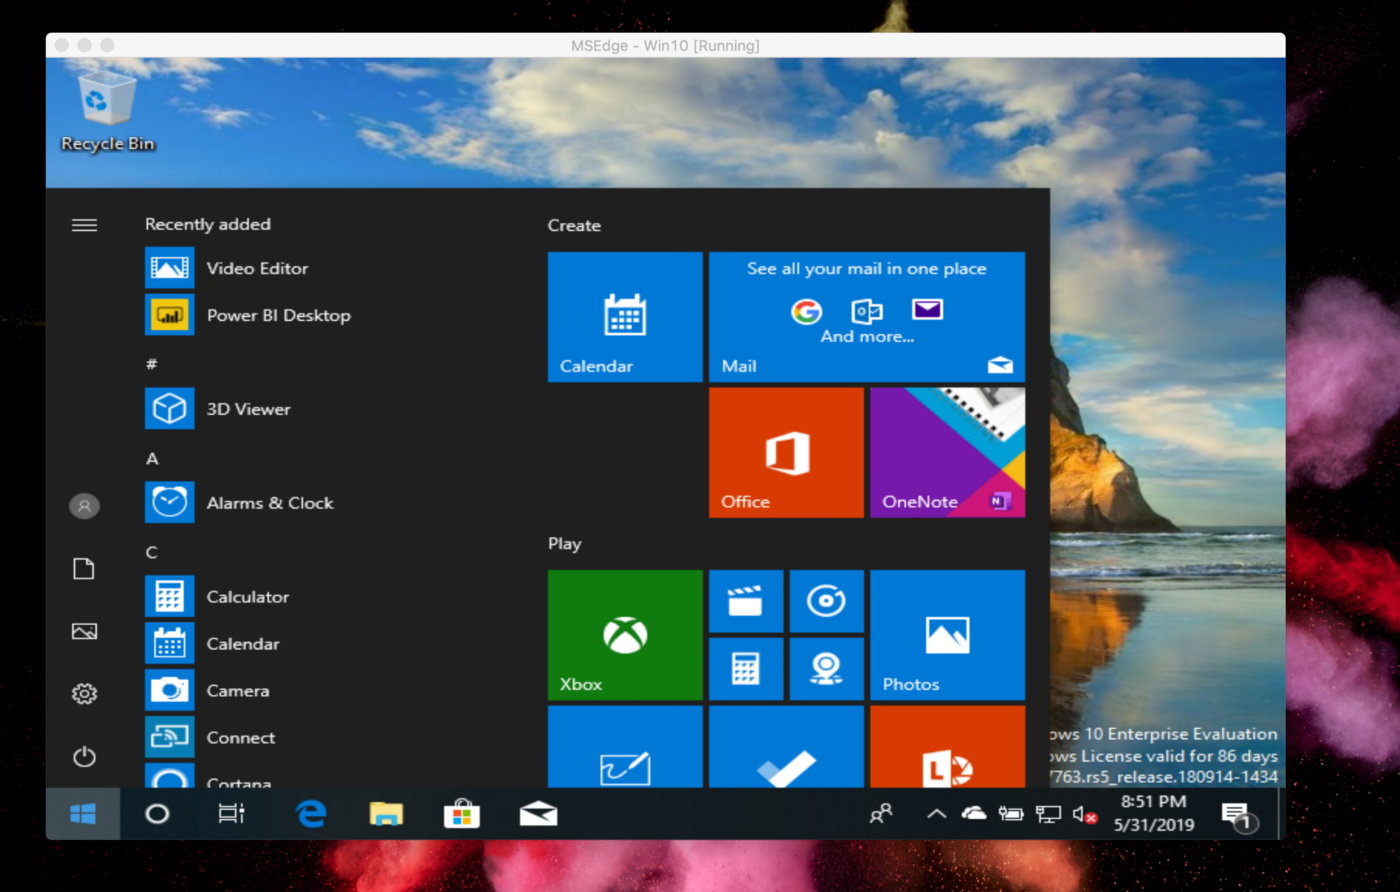 How to Install a Totally Free Windows 10 OS on Your Mac for Fun and